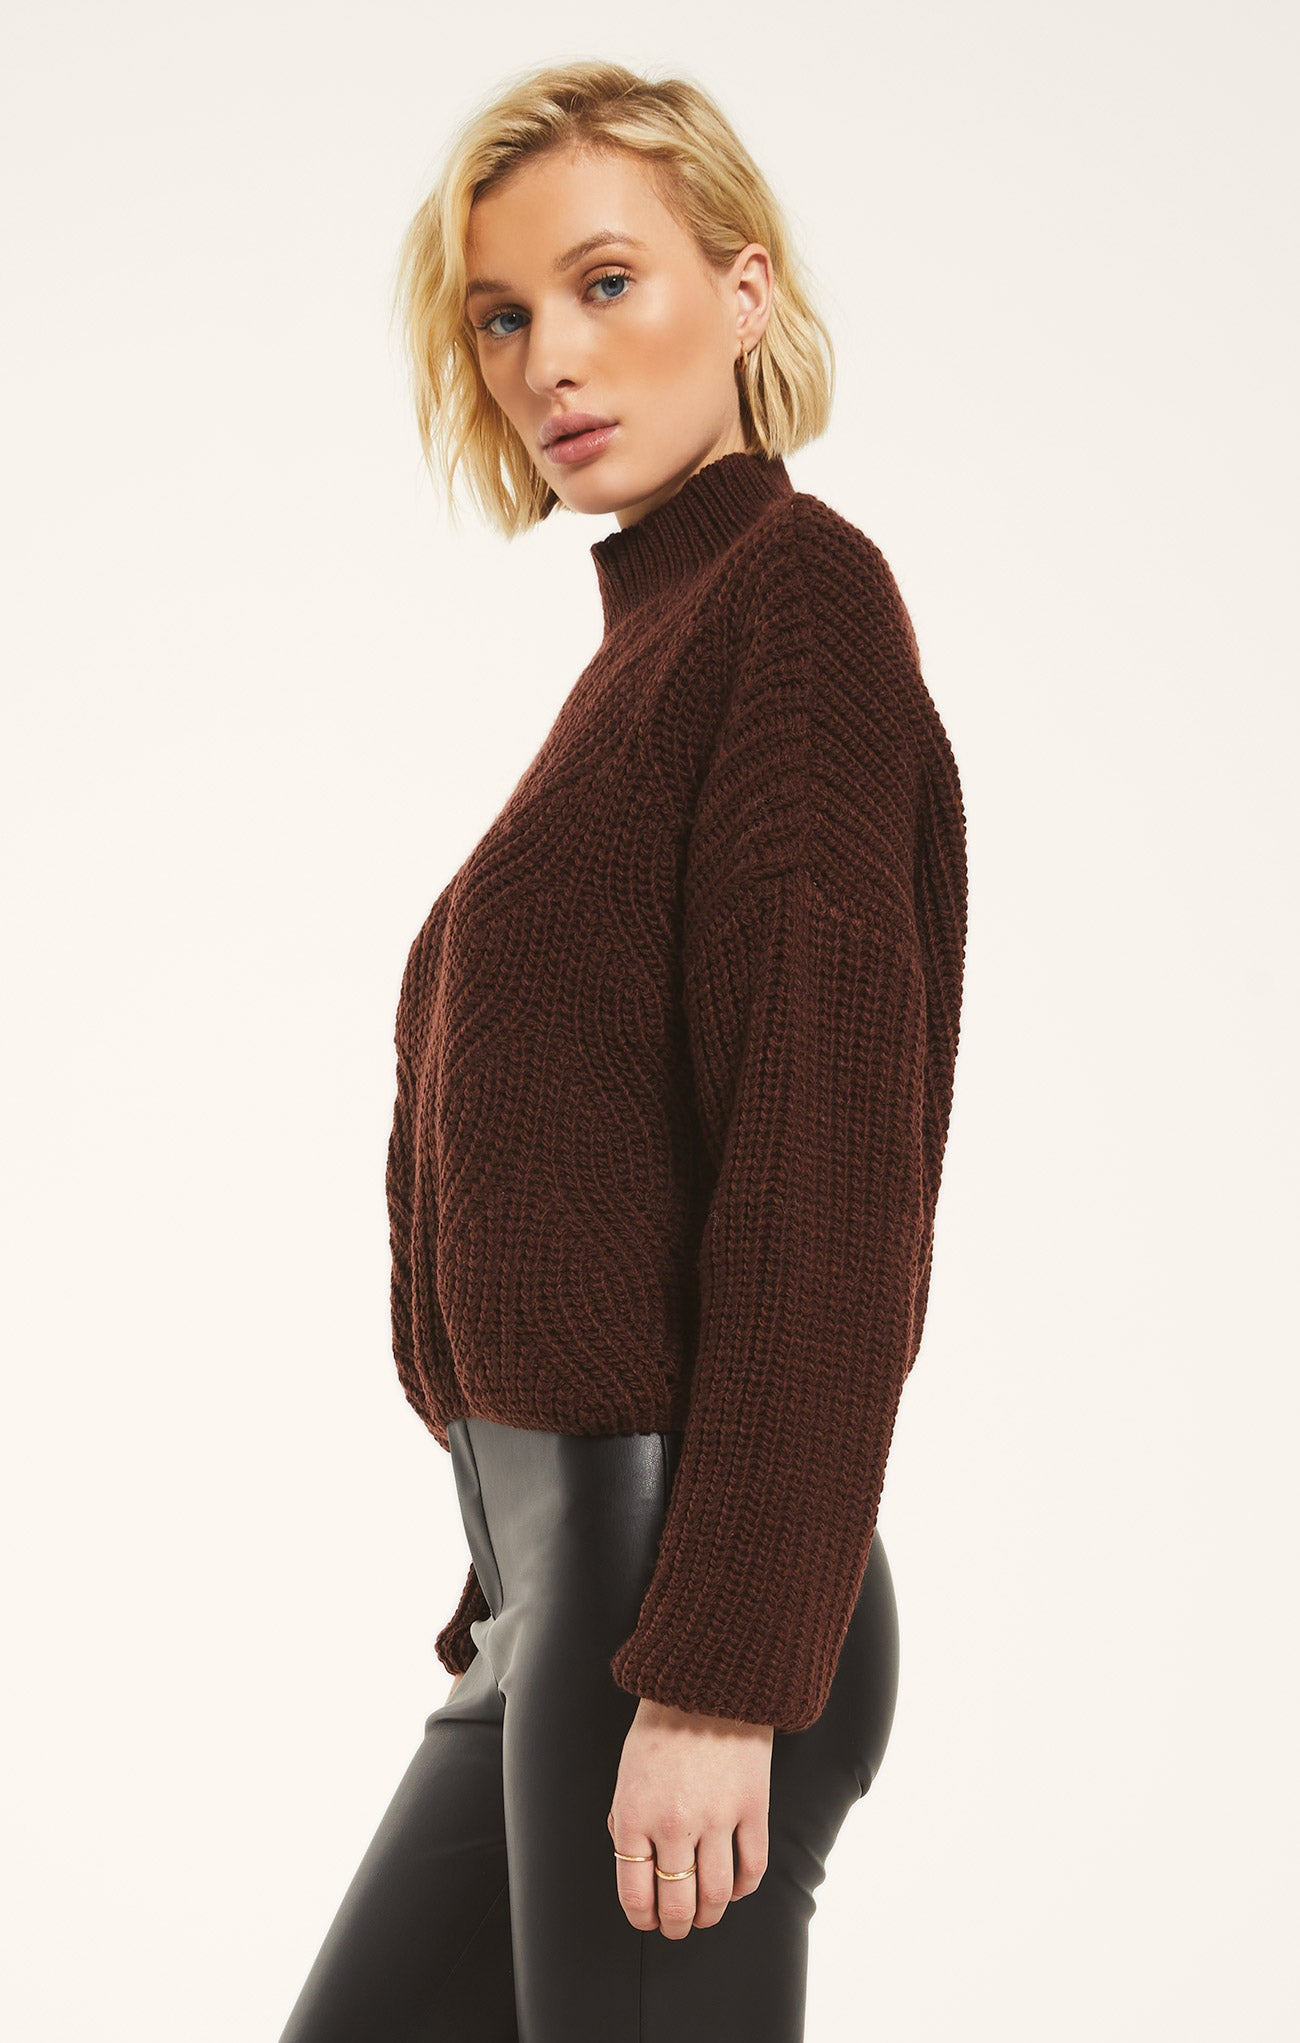 Sweaters Marylebone Sweater by Rag Poets Rum Raisin